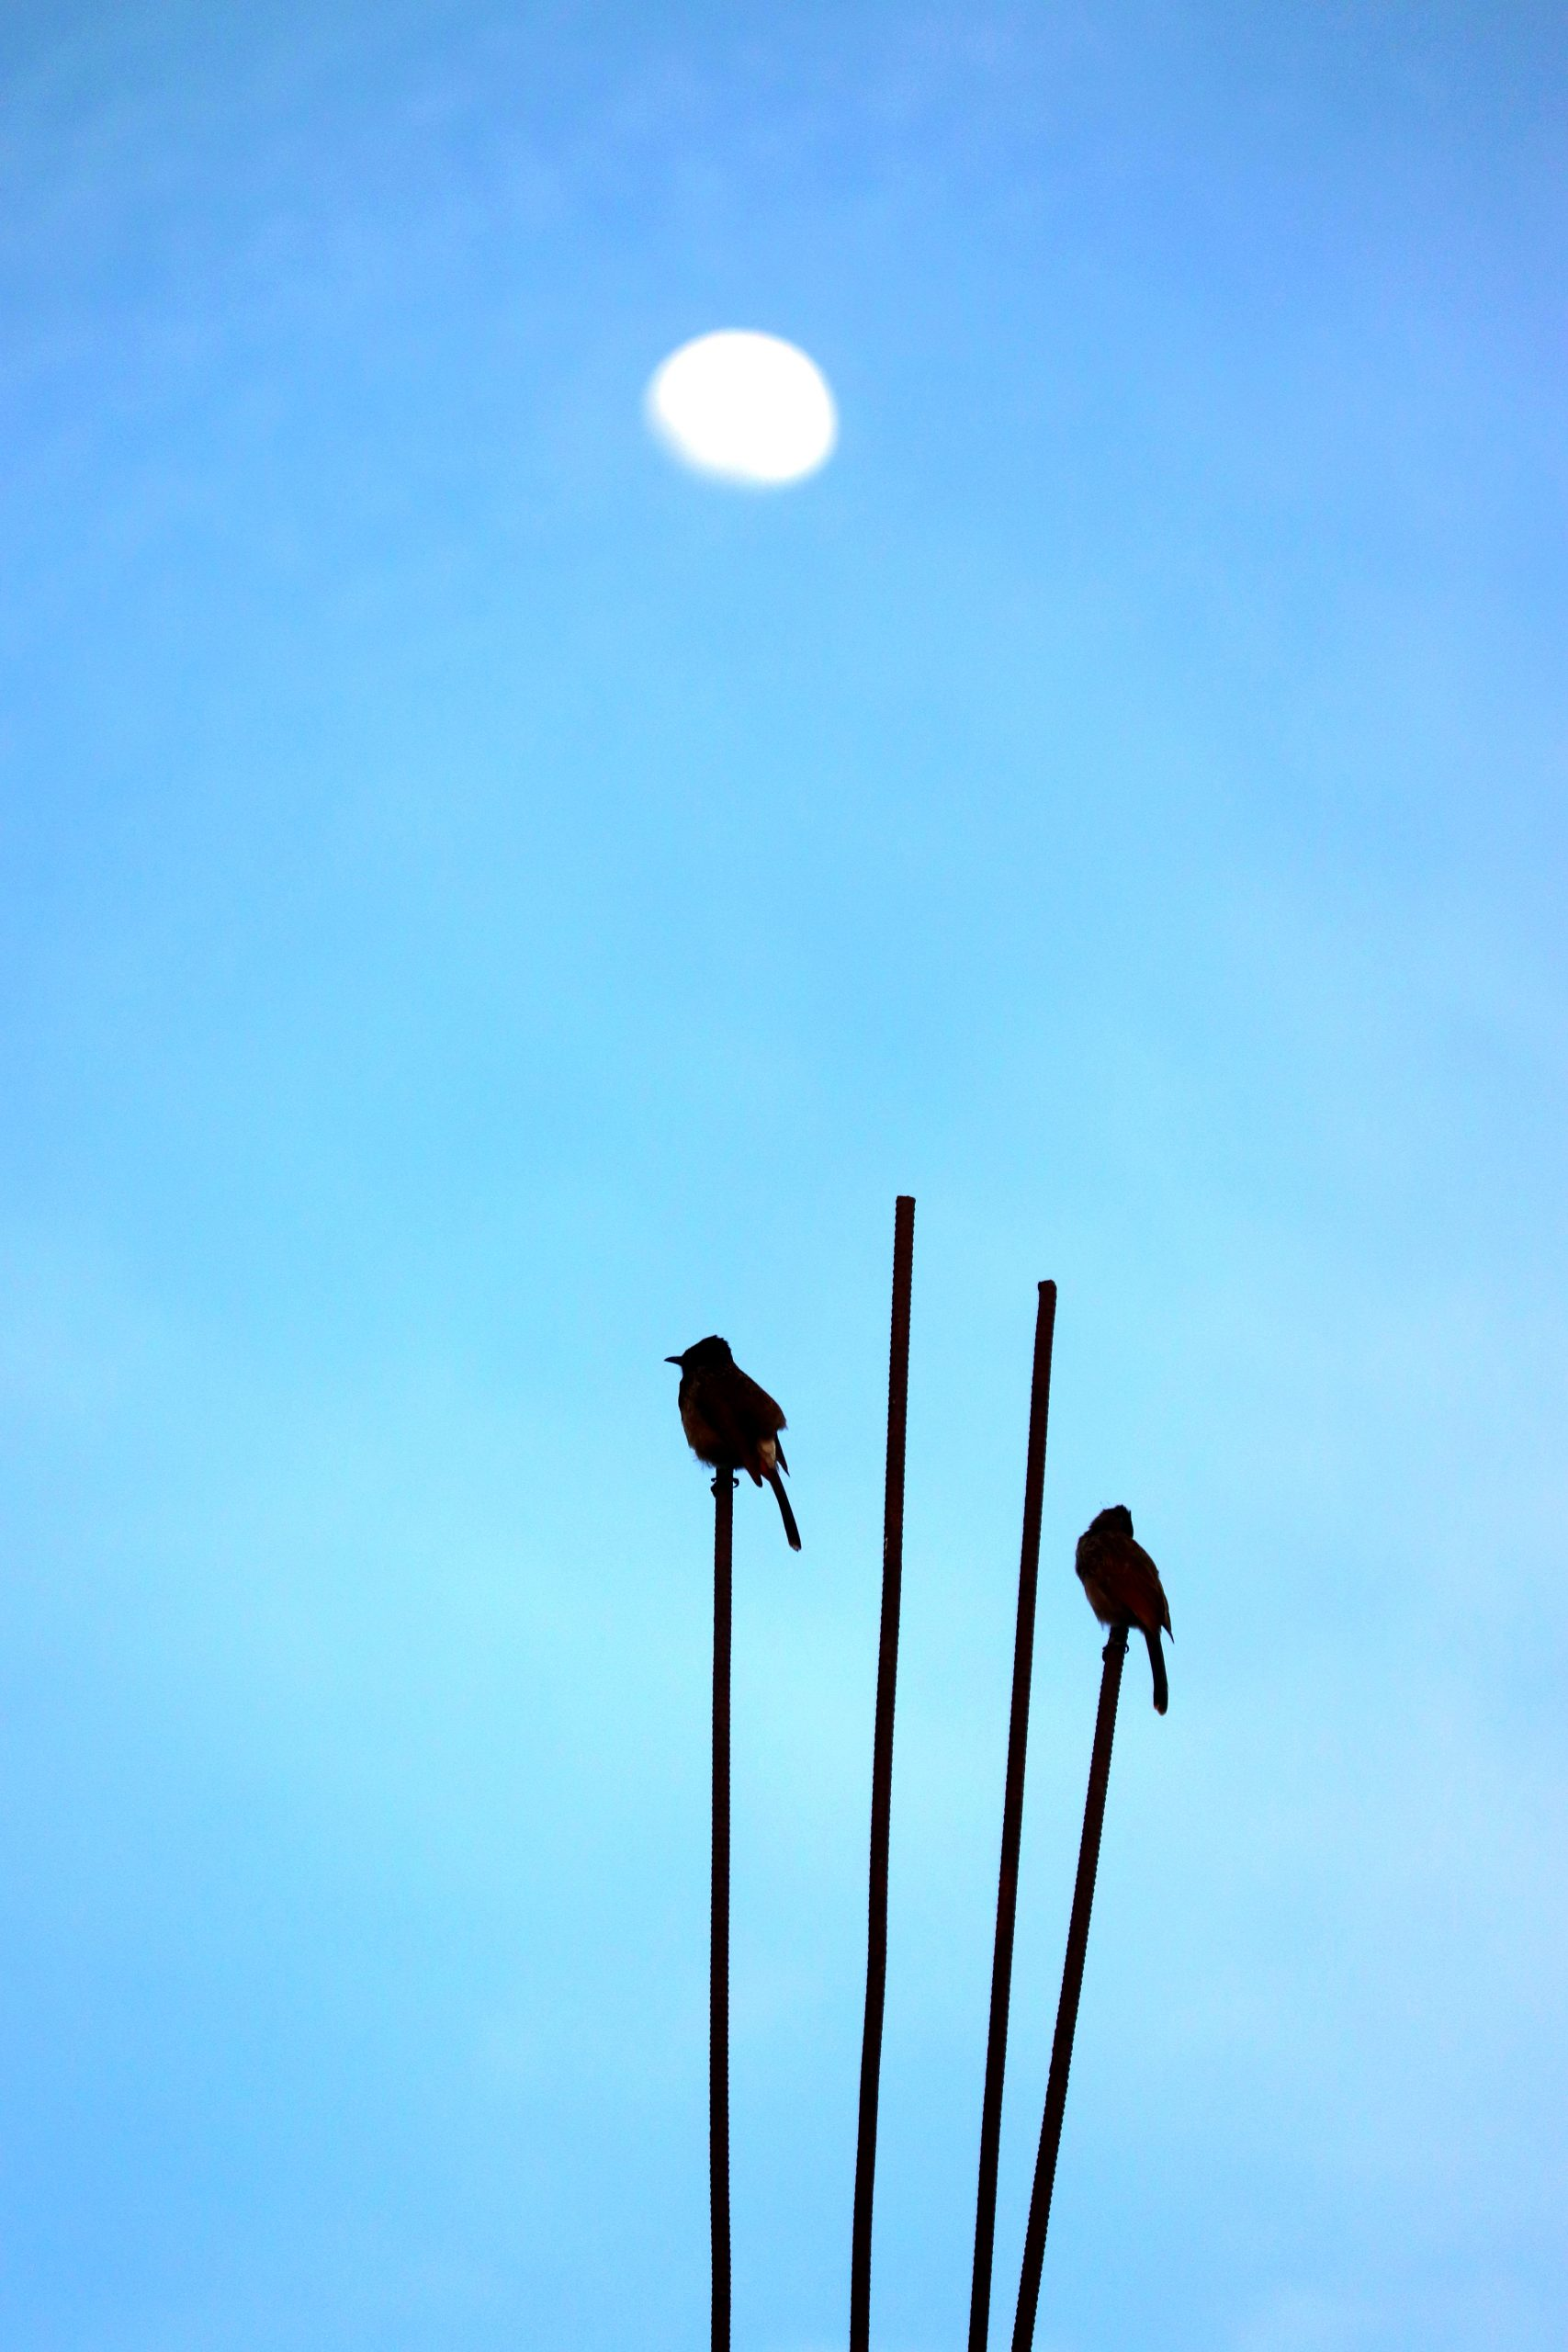 Two Birds on a Stick